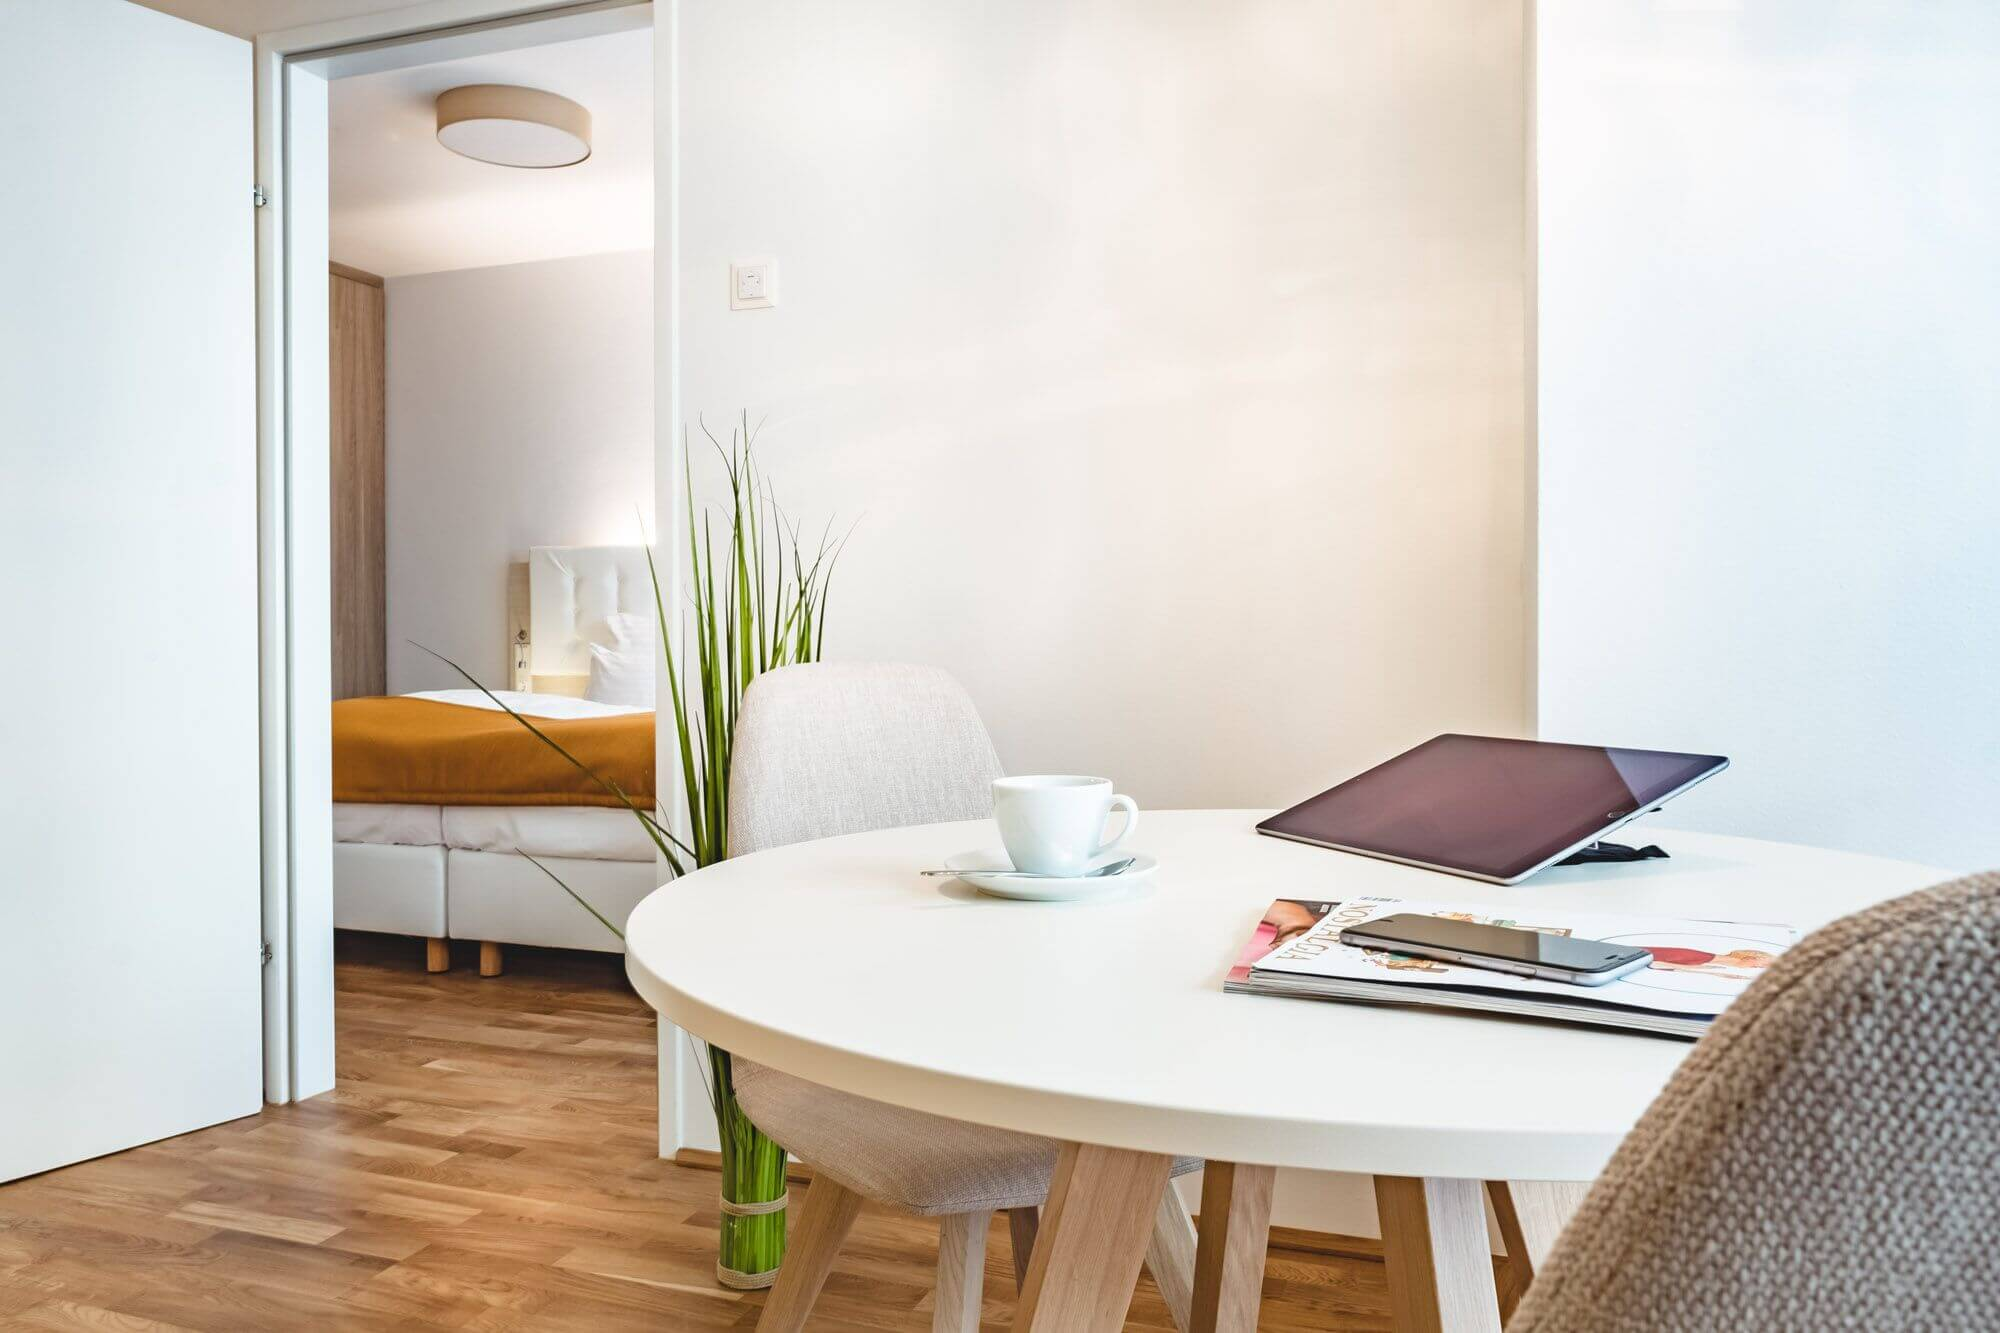 Serviced apartment Vienna - round dining table for 2